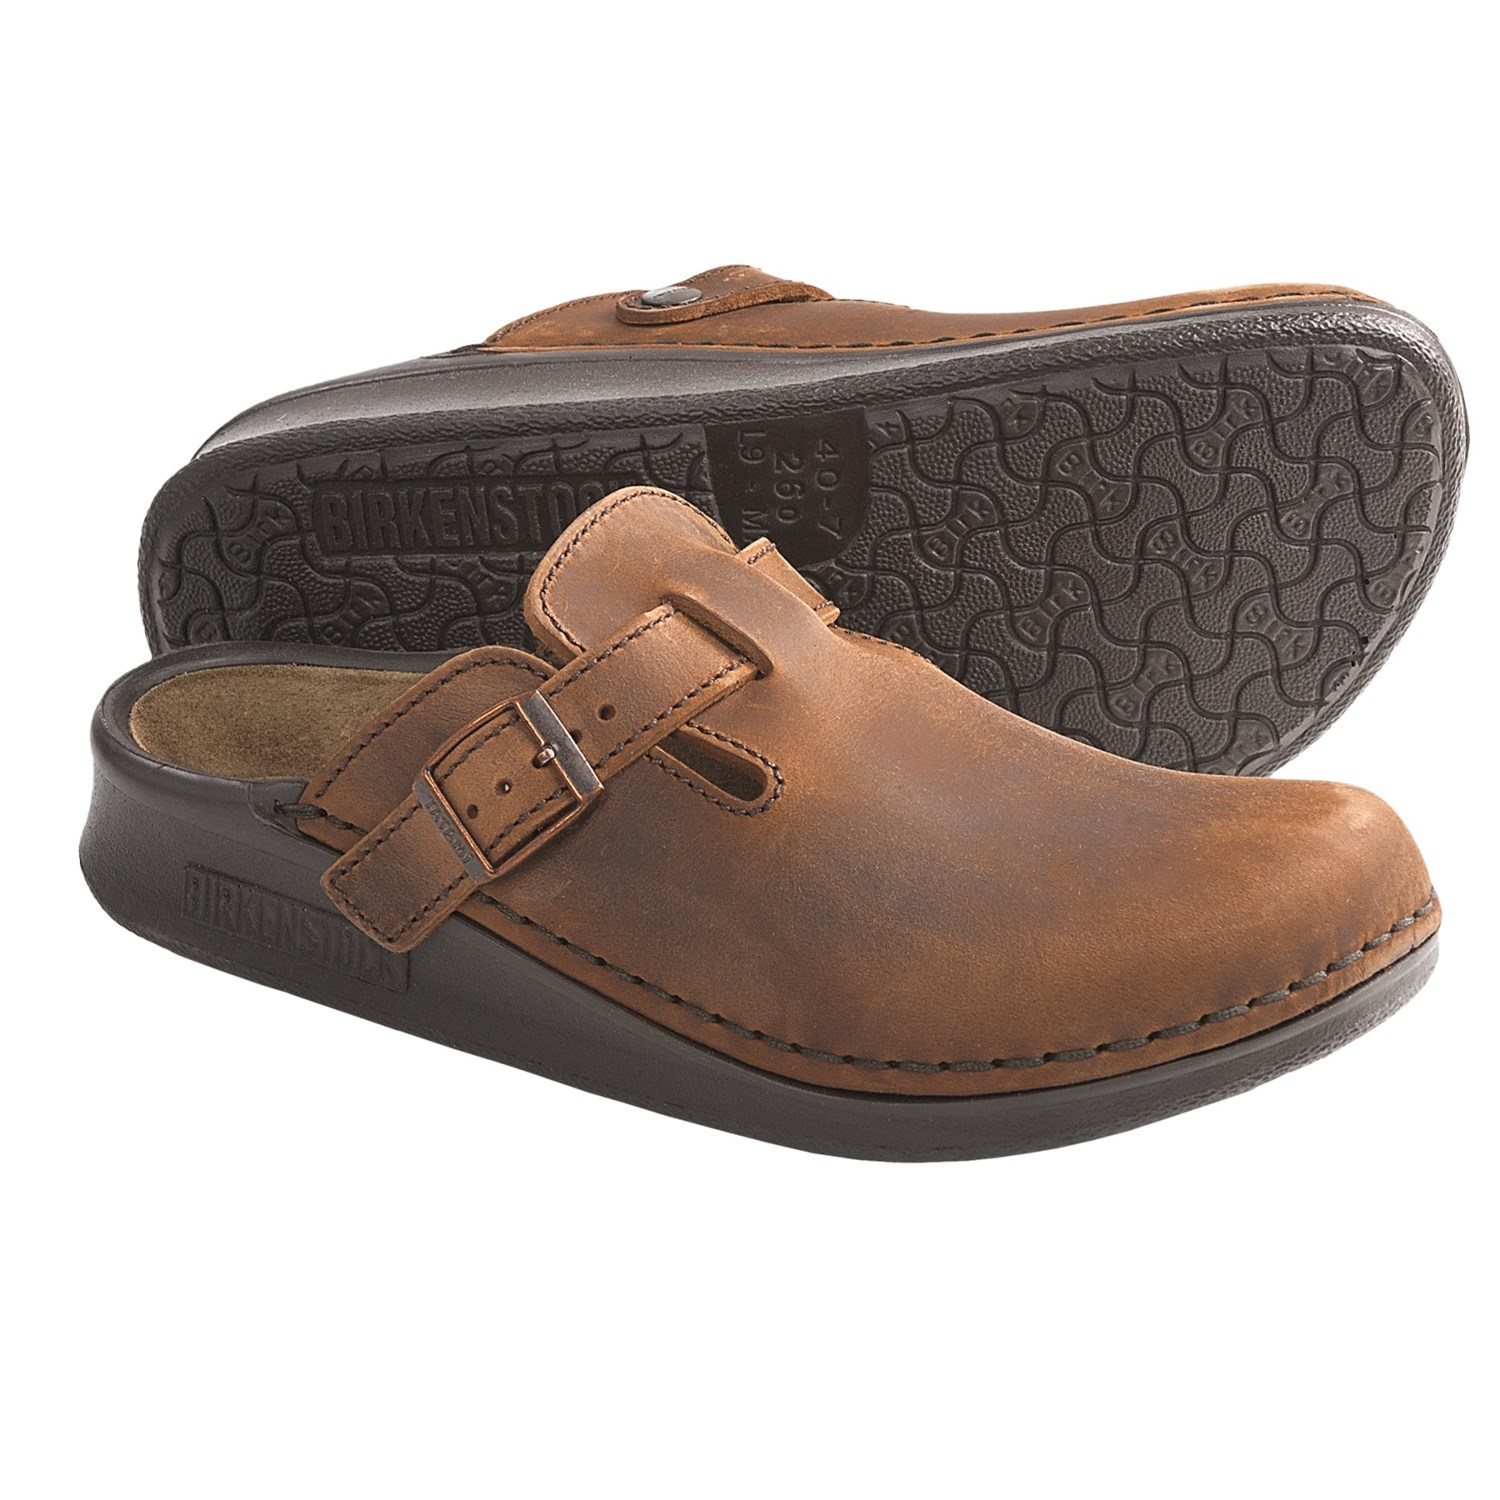 Clog Shoes For Men Images